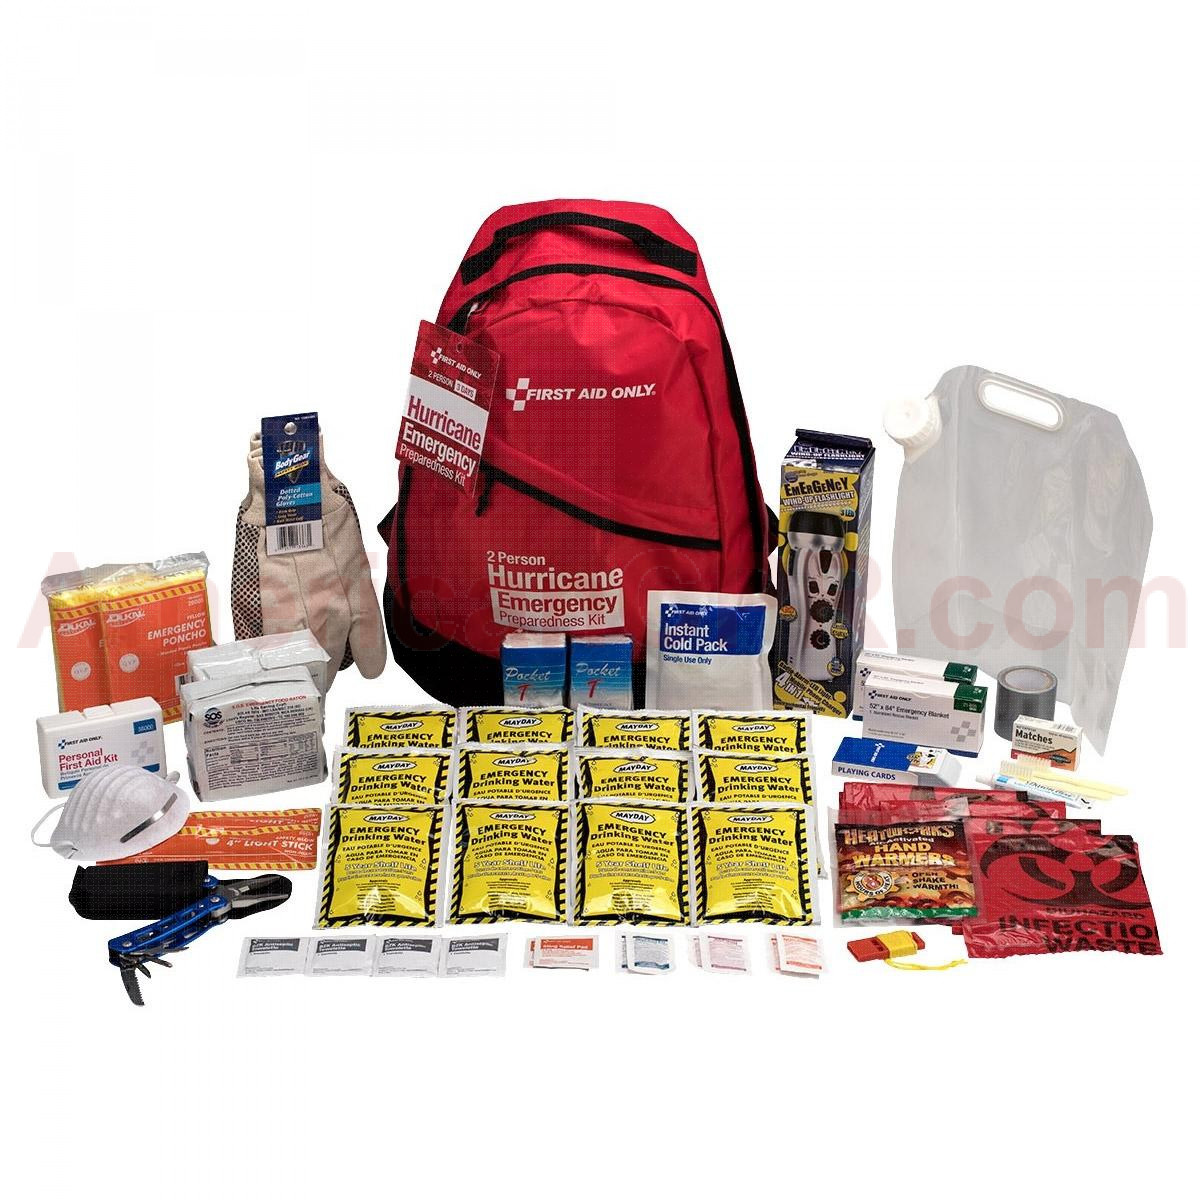 2 Person Emergency Preparedness Hurricane Backpack, First Aid Only